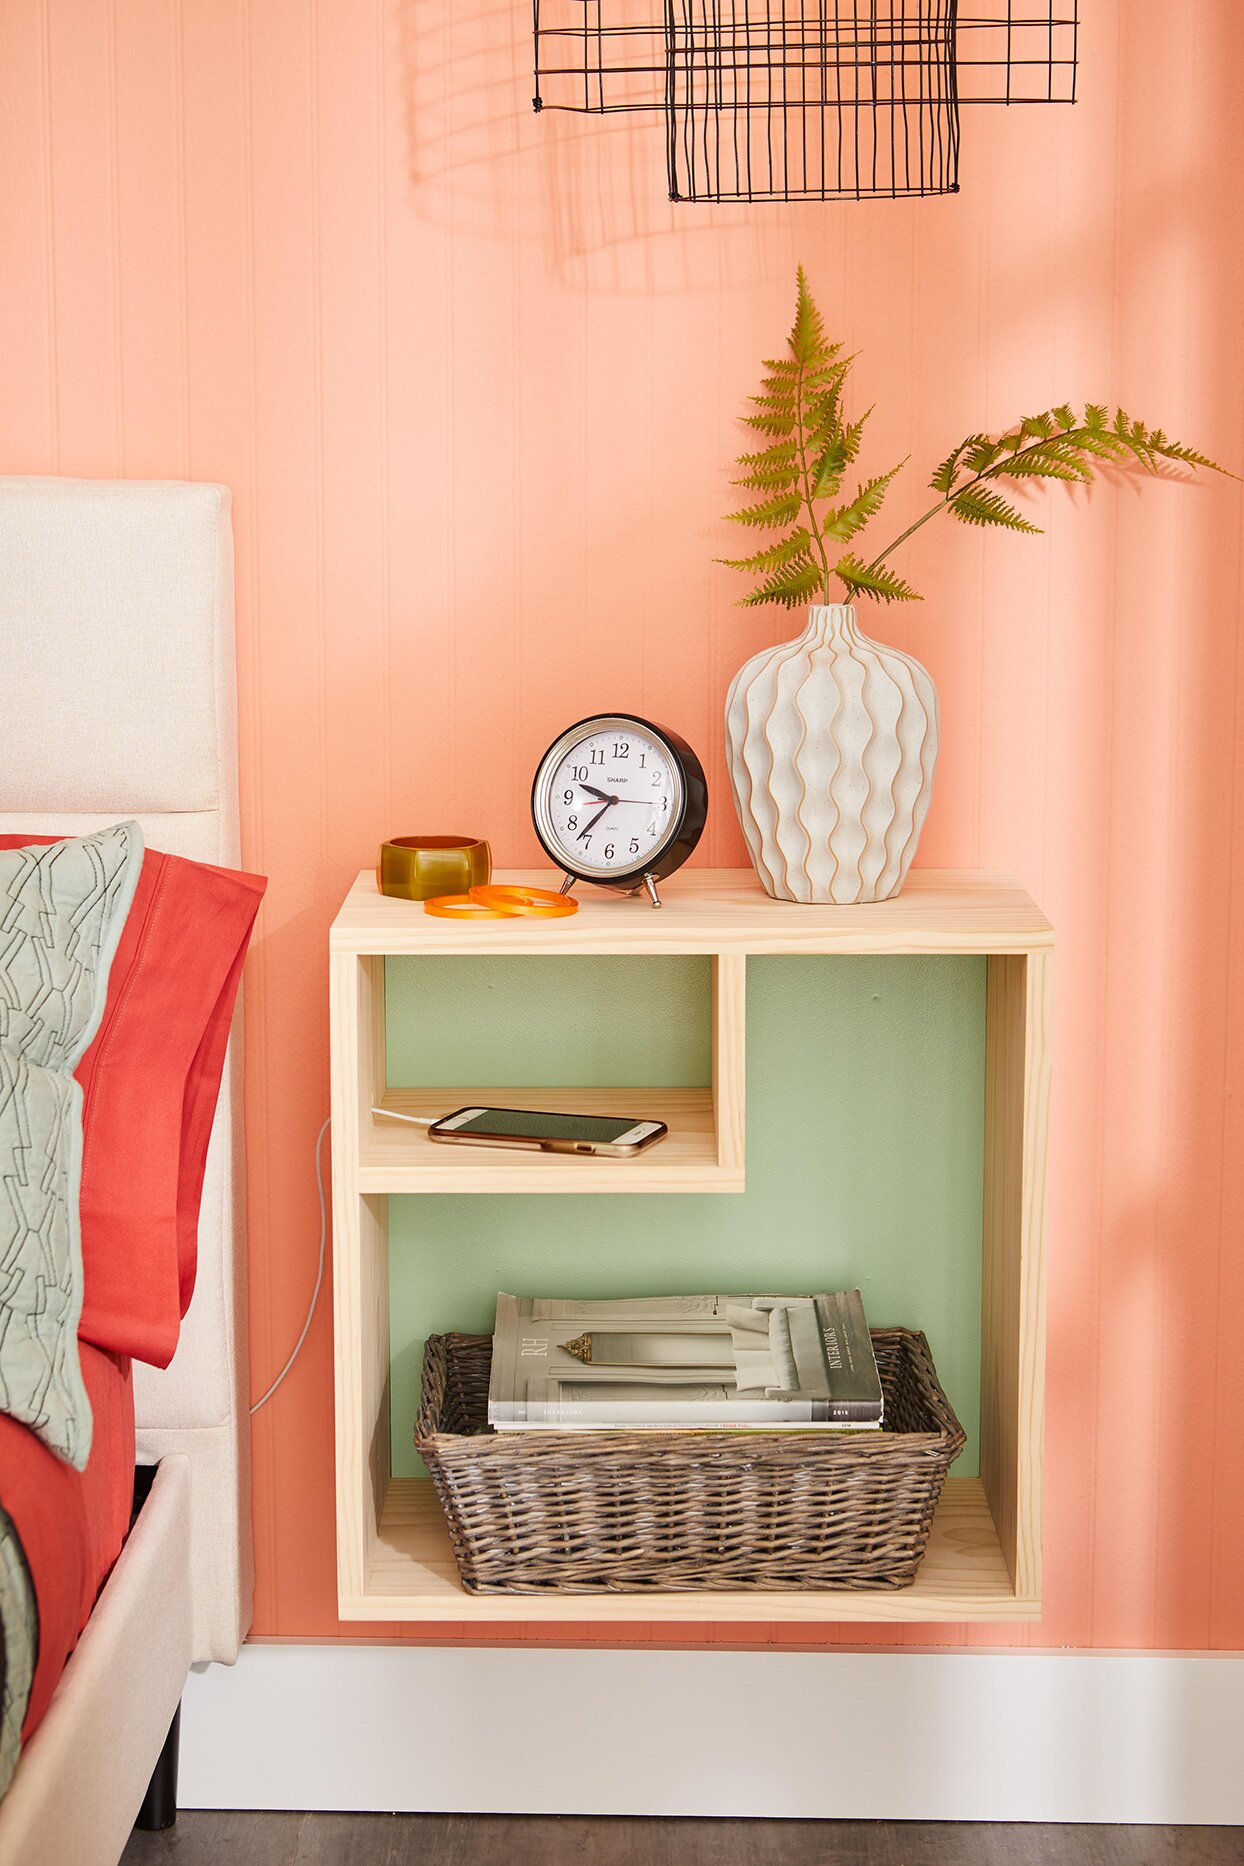 nightstand wall-mount shelf with phone charger hole